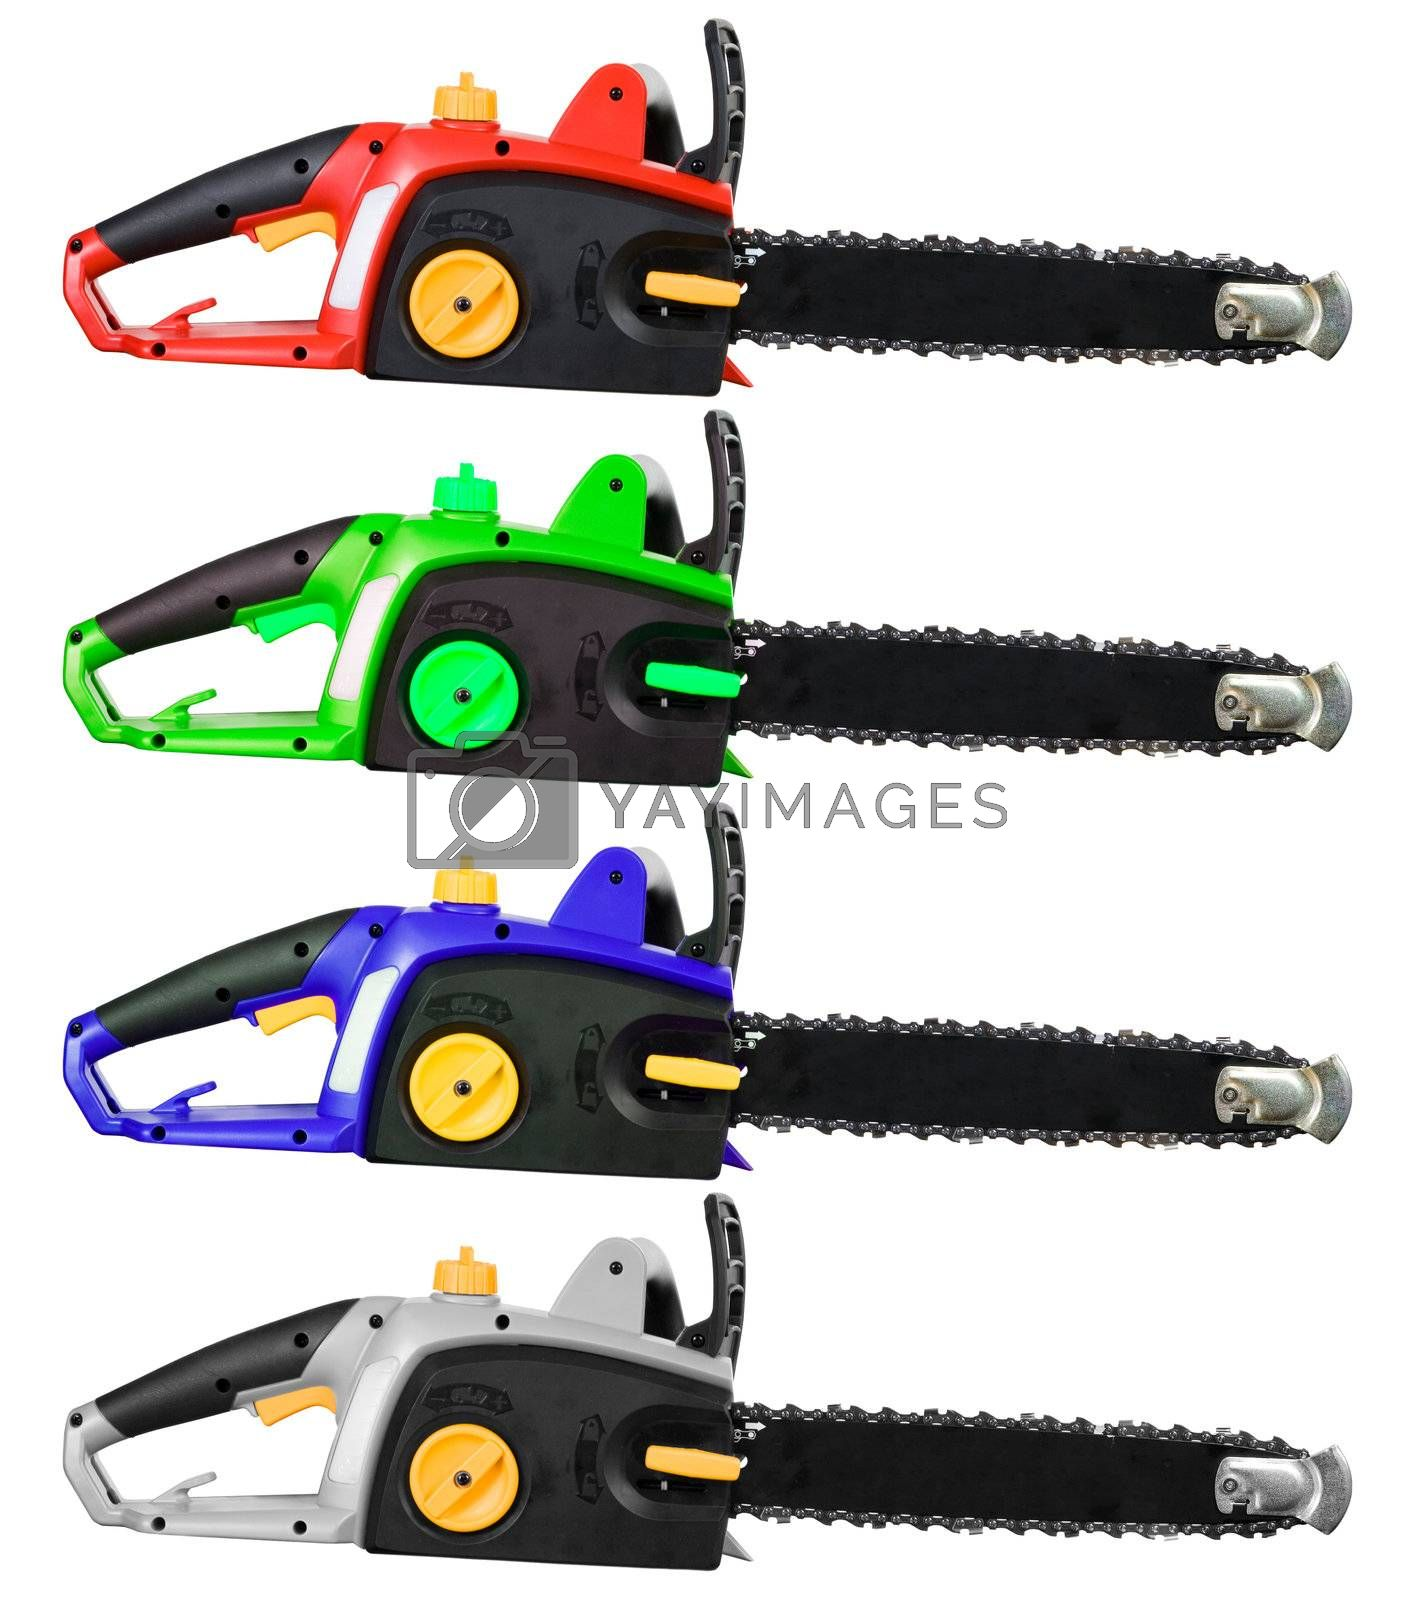 A set of chainsaws isolated on a white background.